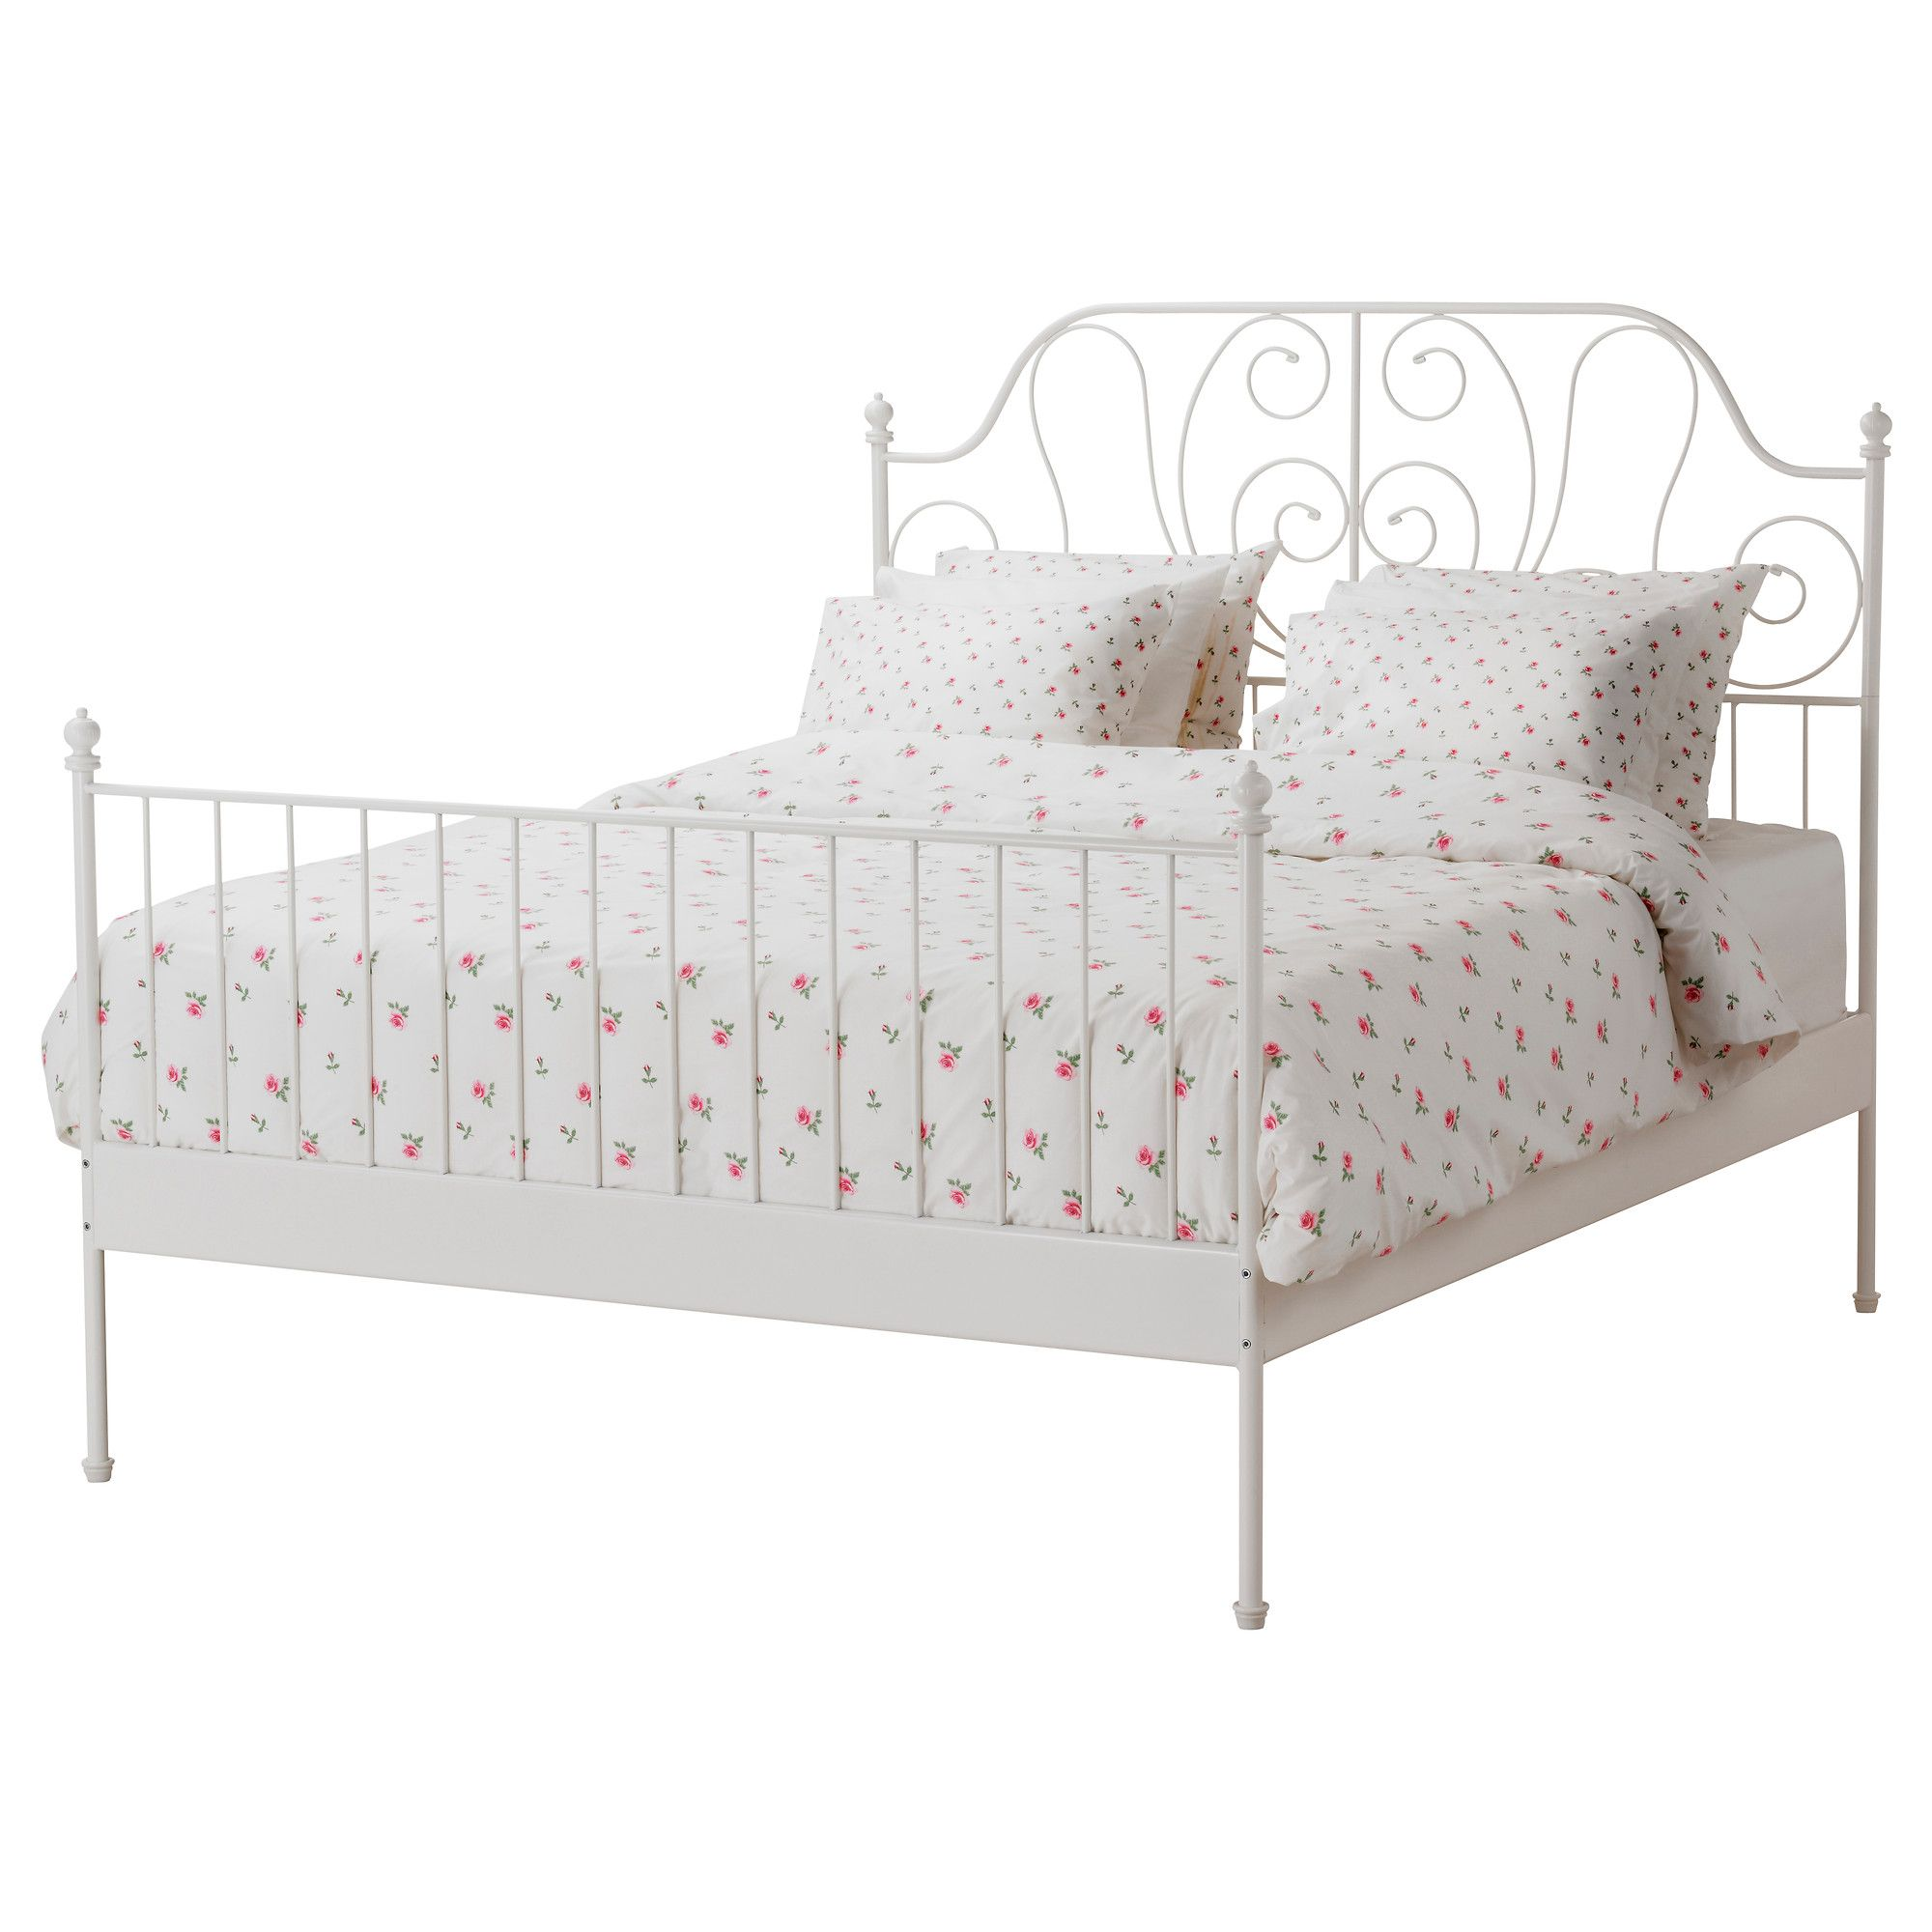 An affordable alternative to an antique iron bed frame? LEIRVIK Bed ...